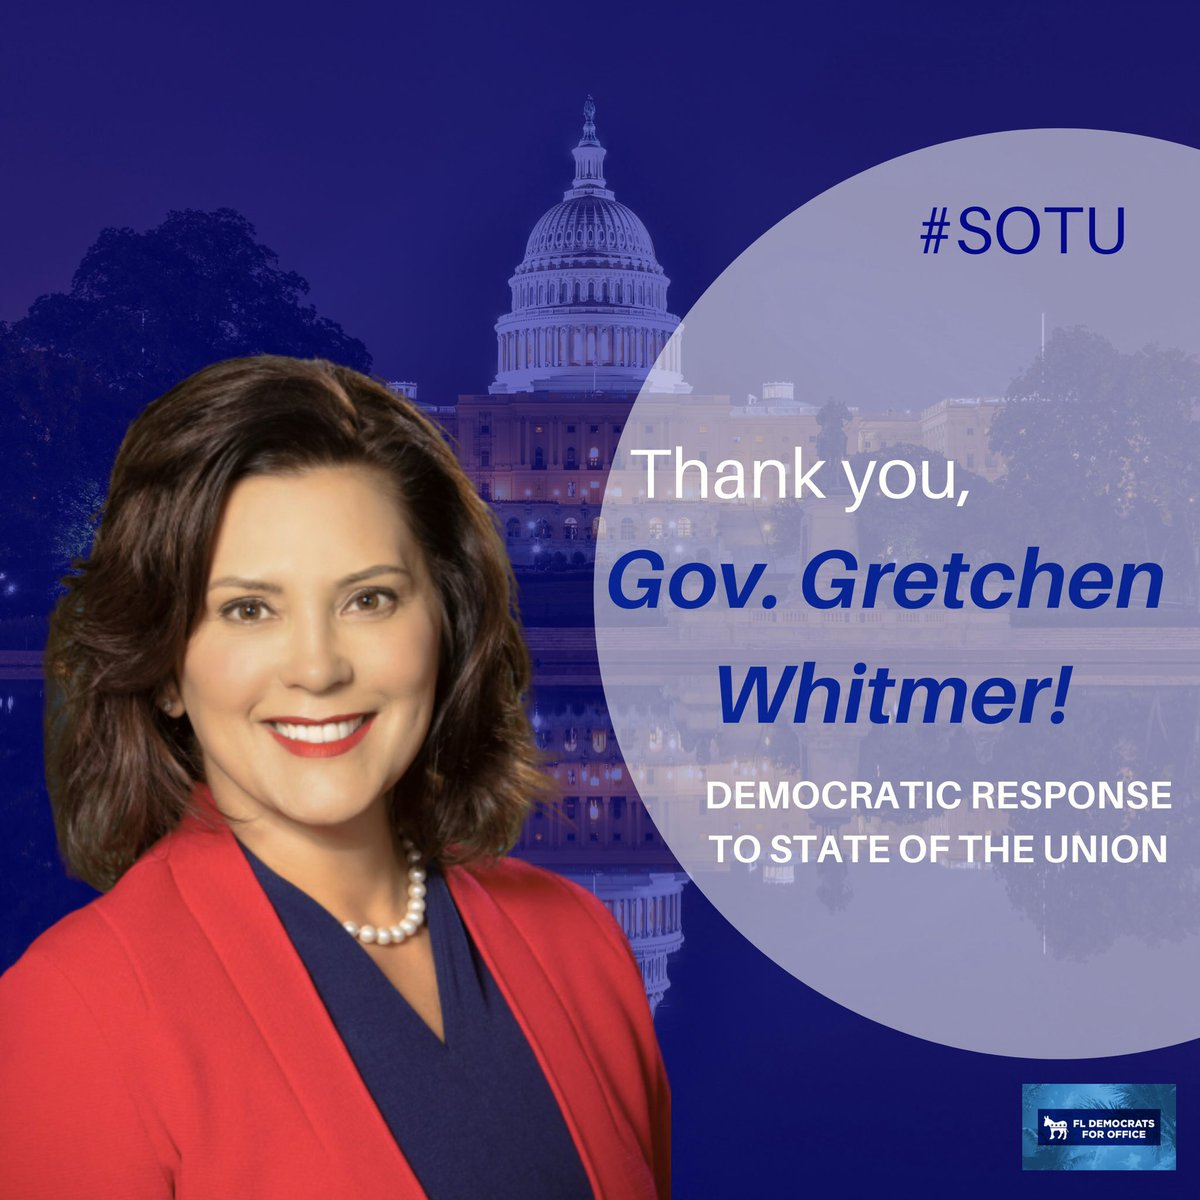 Gov. @GeWhitmer, couldn't have said it better, education is essential for the betterment of this next generation. Together, we will join in our efforts to improve the quality of life for all Americans. ⁣ ⁣ Enough with the lies, enough with the same talking points filled with